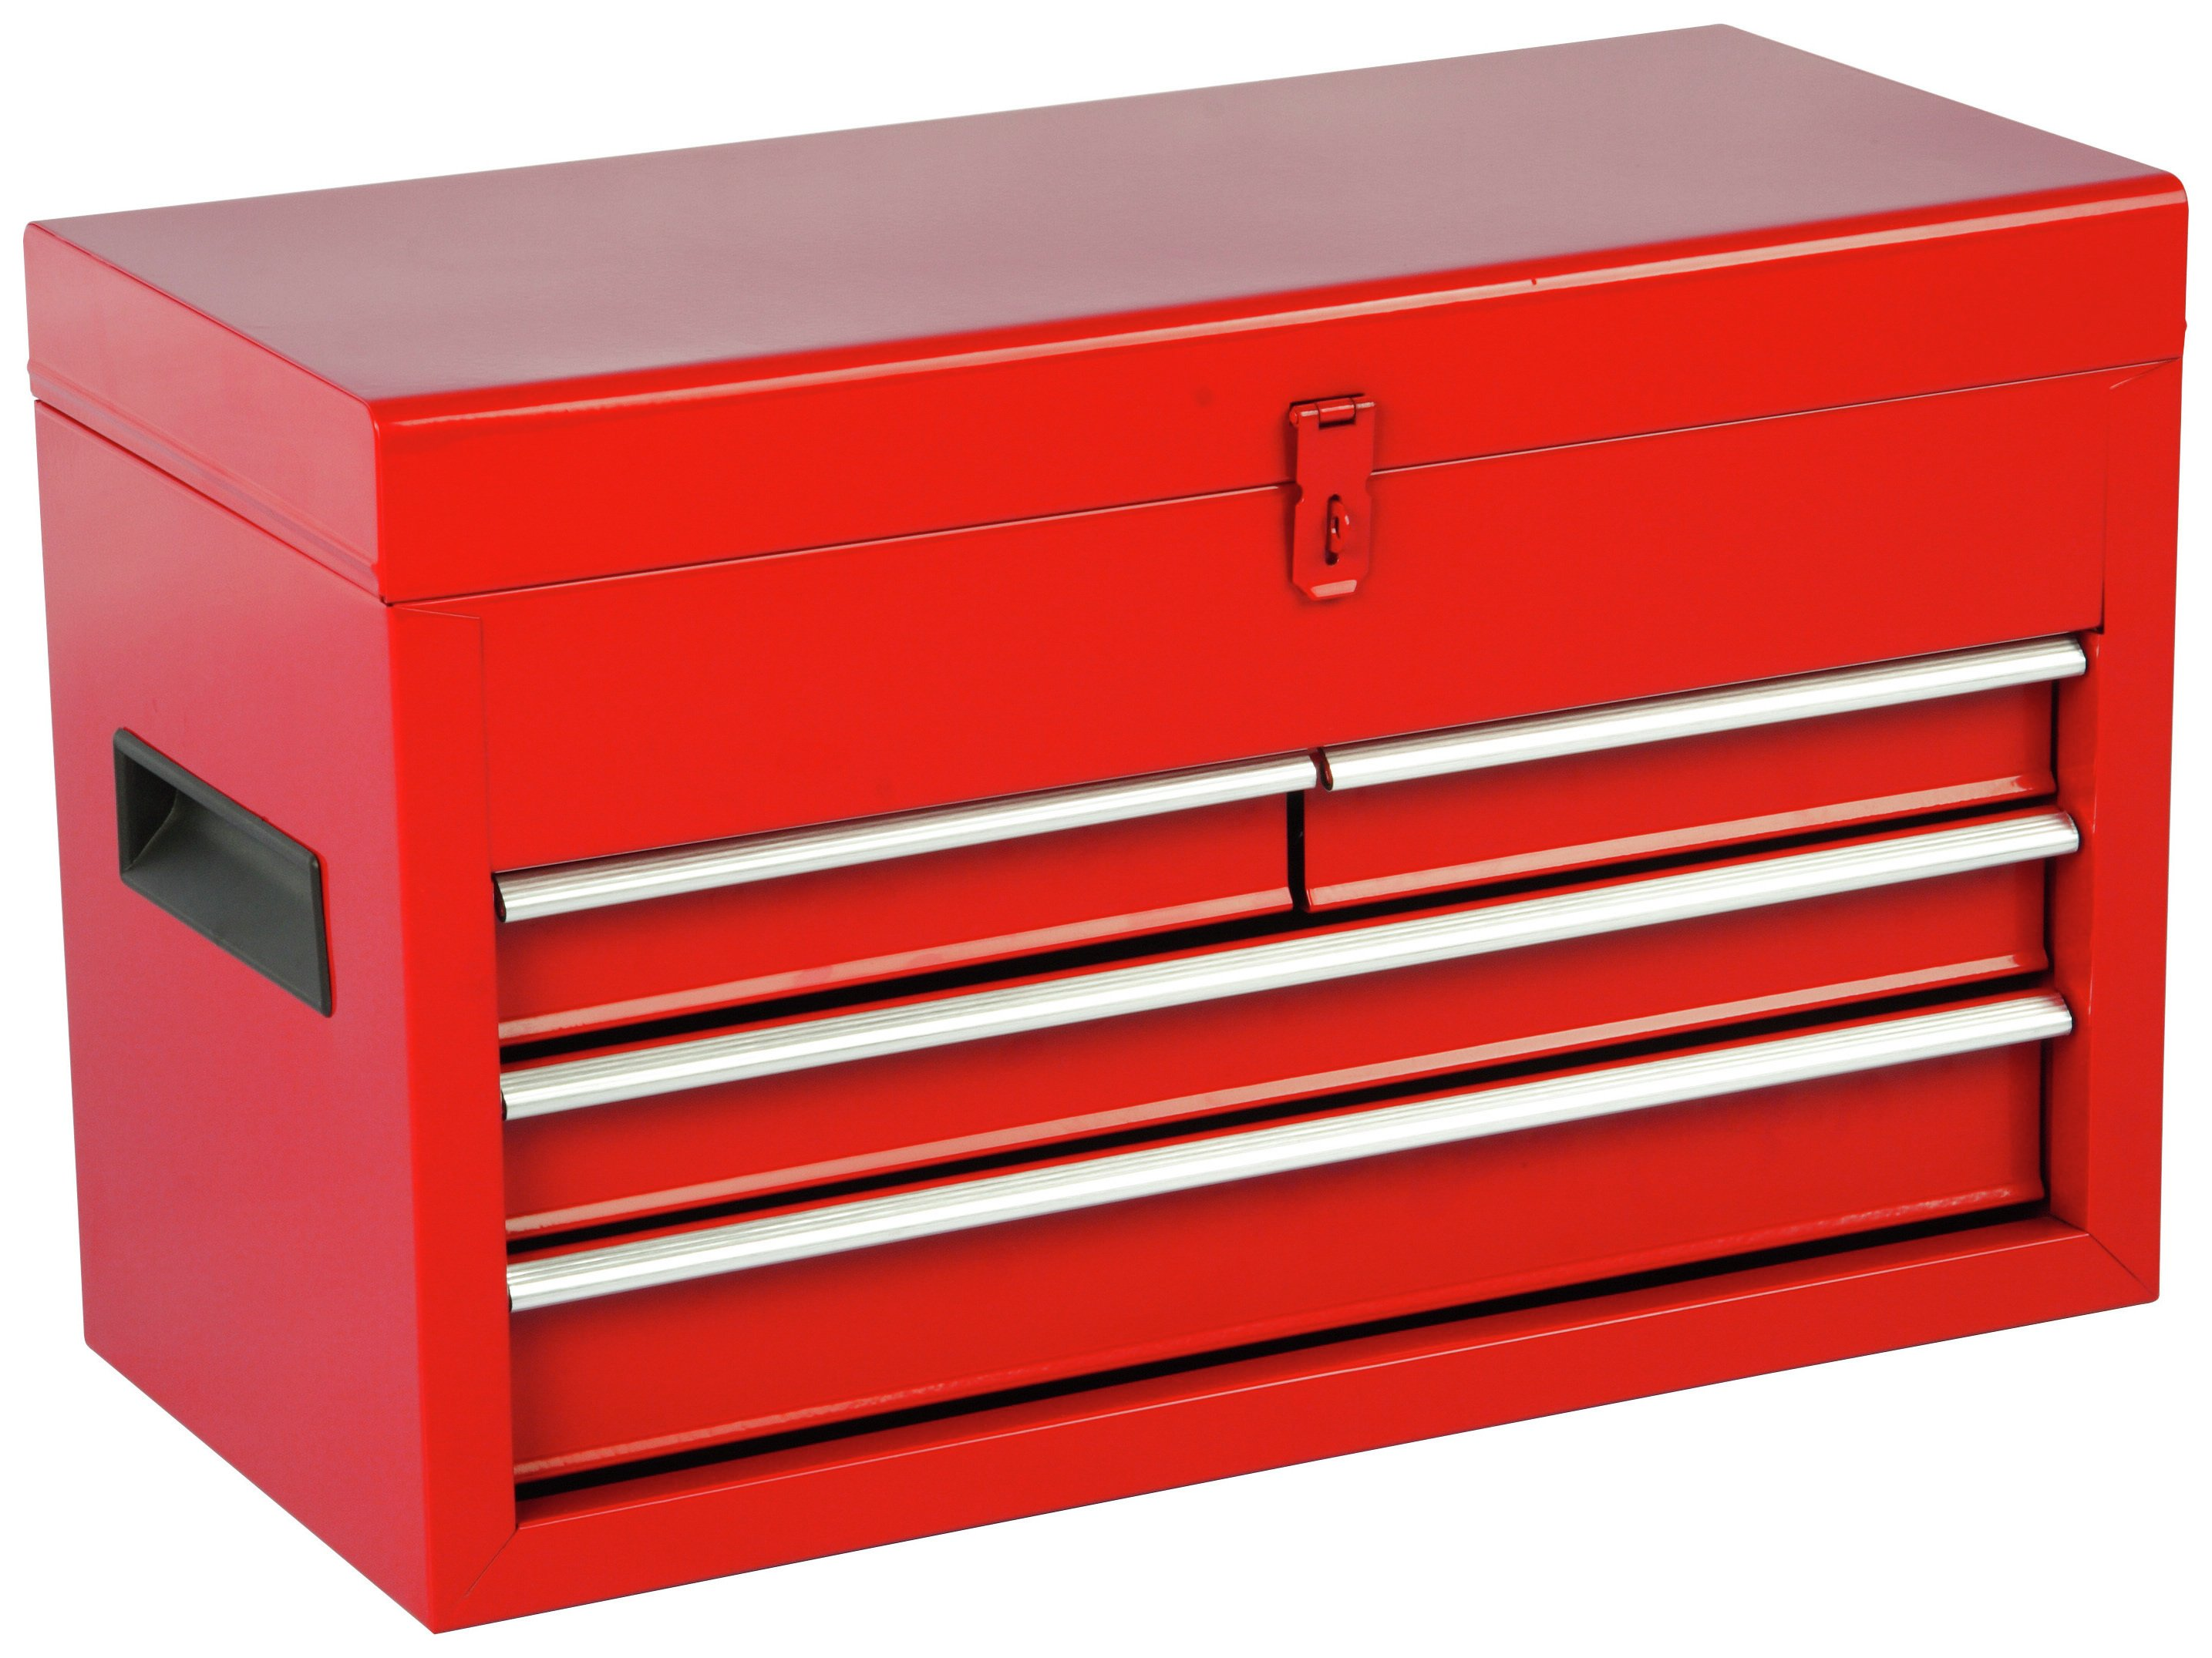 Hilka - 4 Drawer Tool Chest lowest price